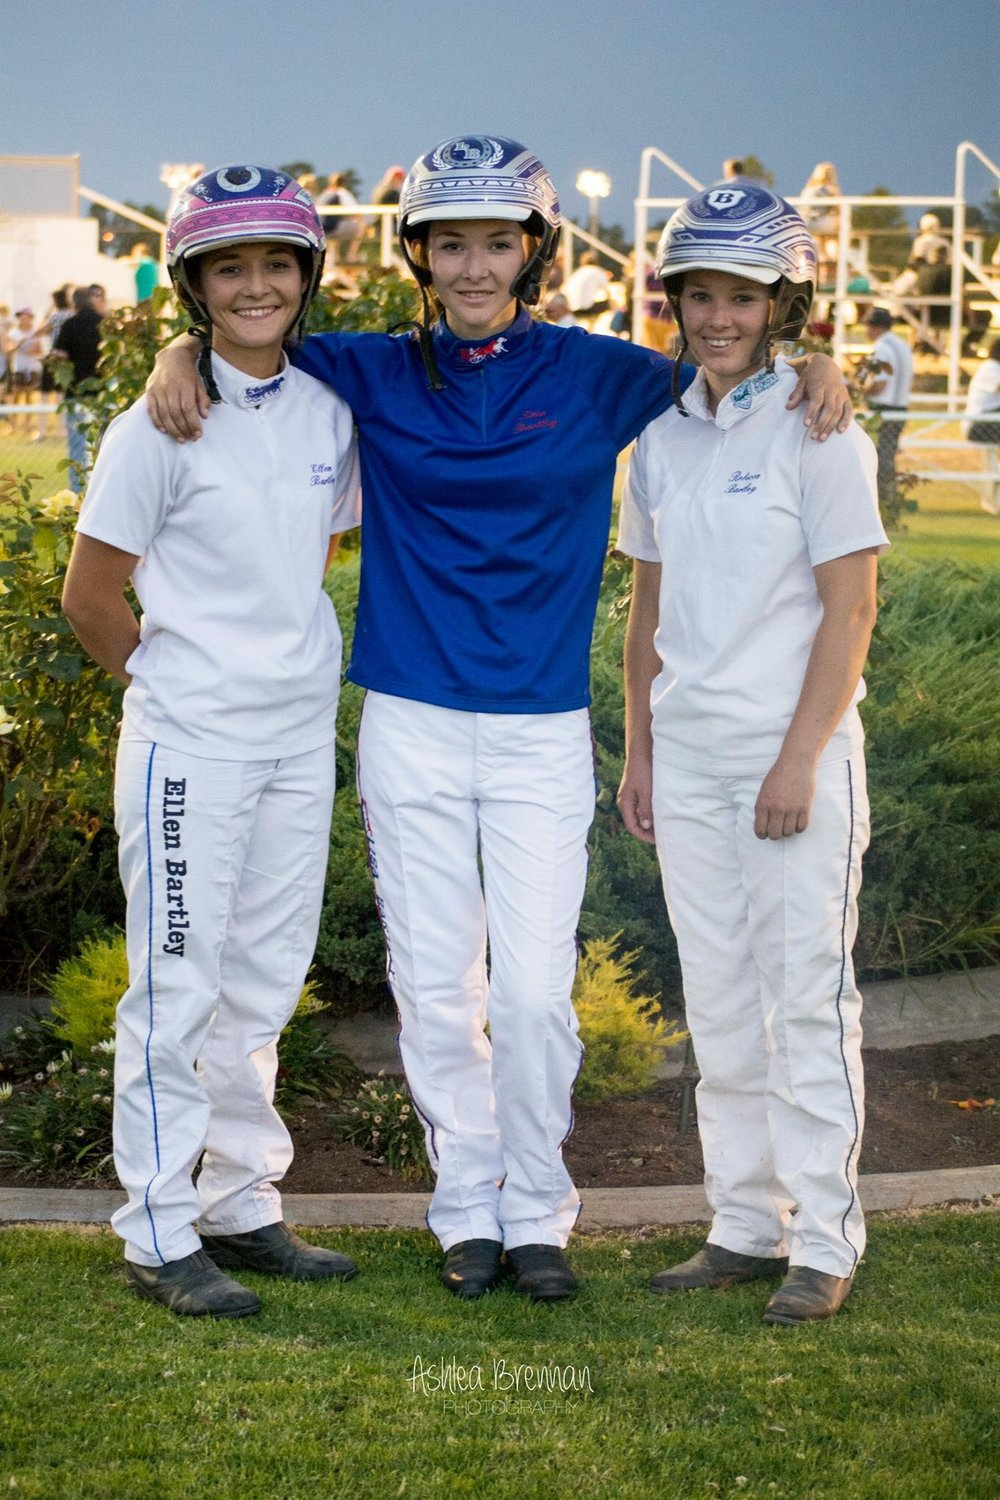 Image courtesy Ashlea Brennan - Rebecca (right) with sisters Ellen(left) and Lisa - all three have made their marks in Harness Racing